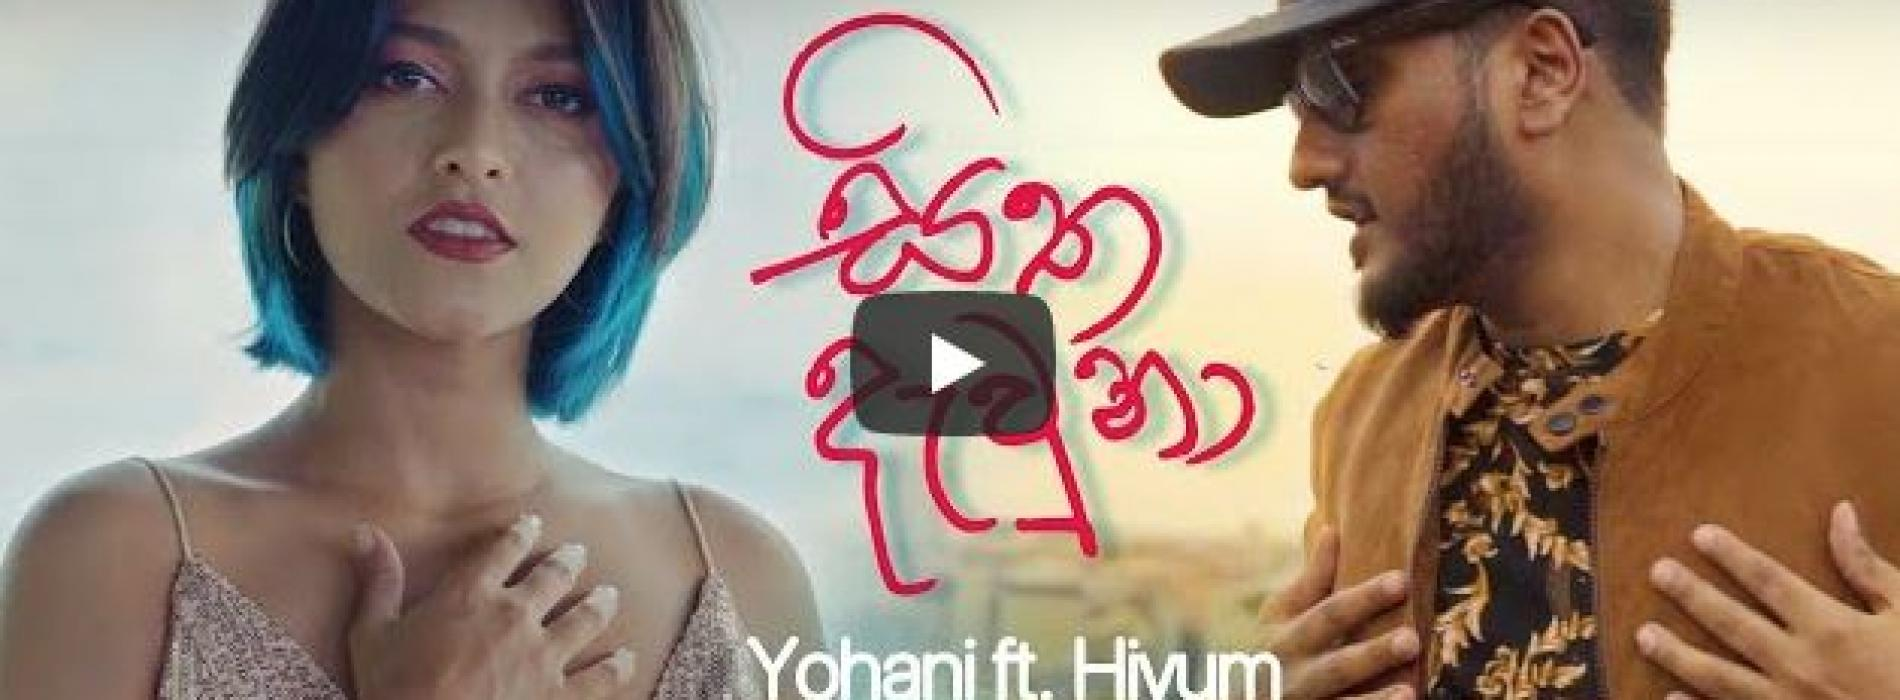 New Music : Yohani ft Hiyum – Sitha Dawuna සිත දැවුනා | Chamath Sangeeth (Official Music Video)